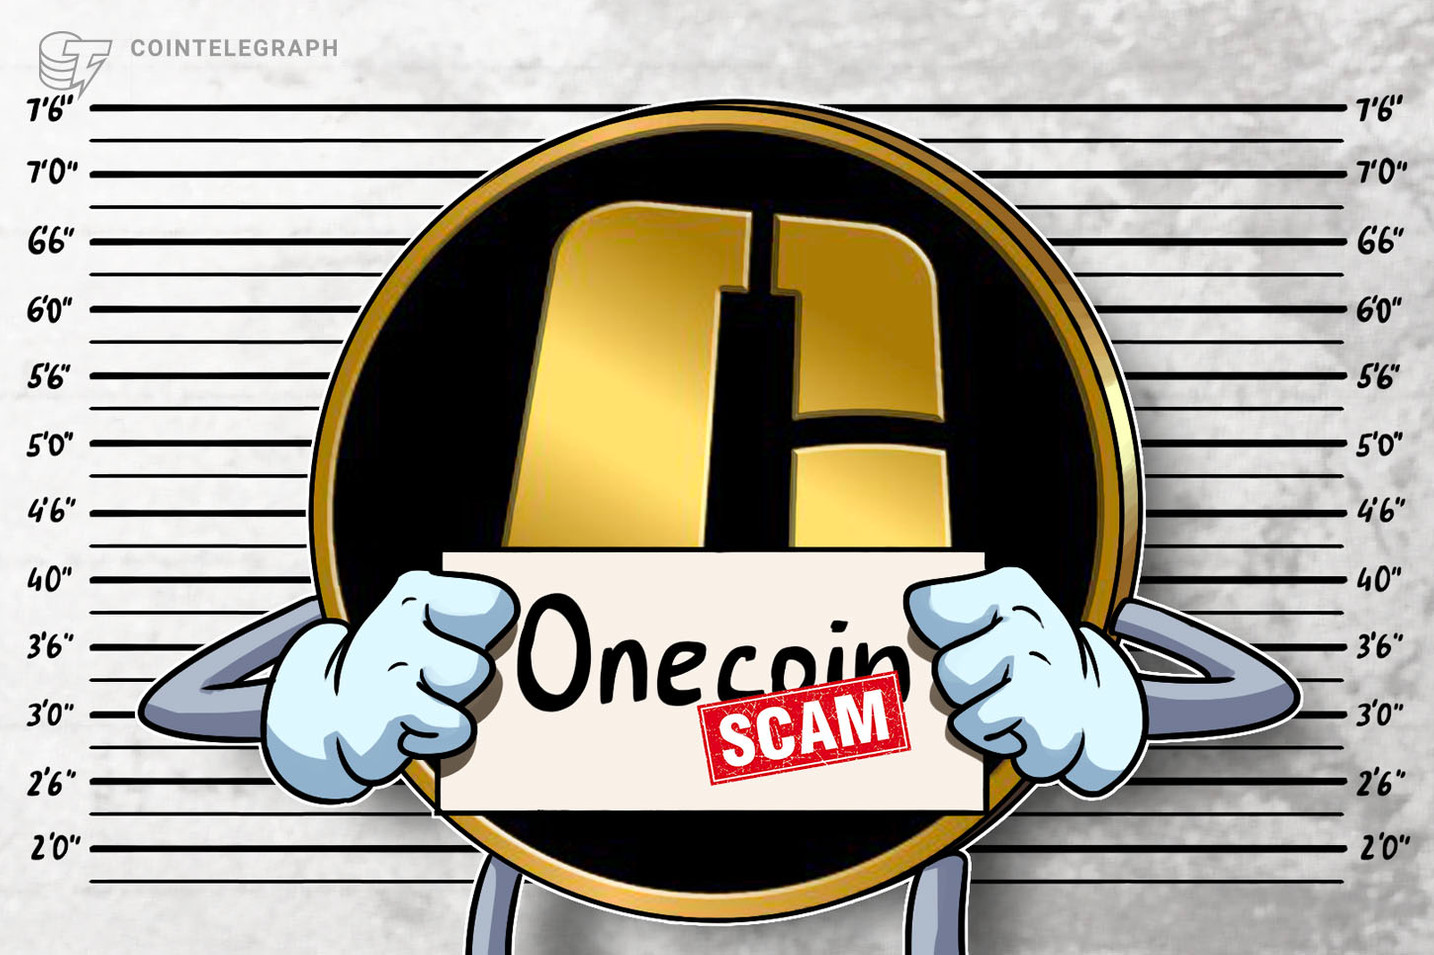 US District Attorney Charges OneCoin Founders With 'Billions' in Alleged Fraud